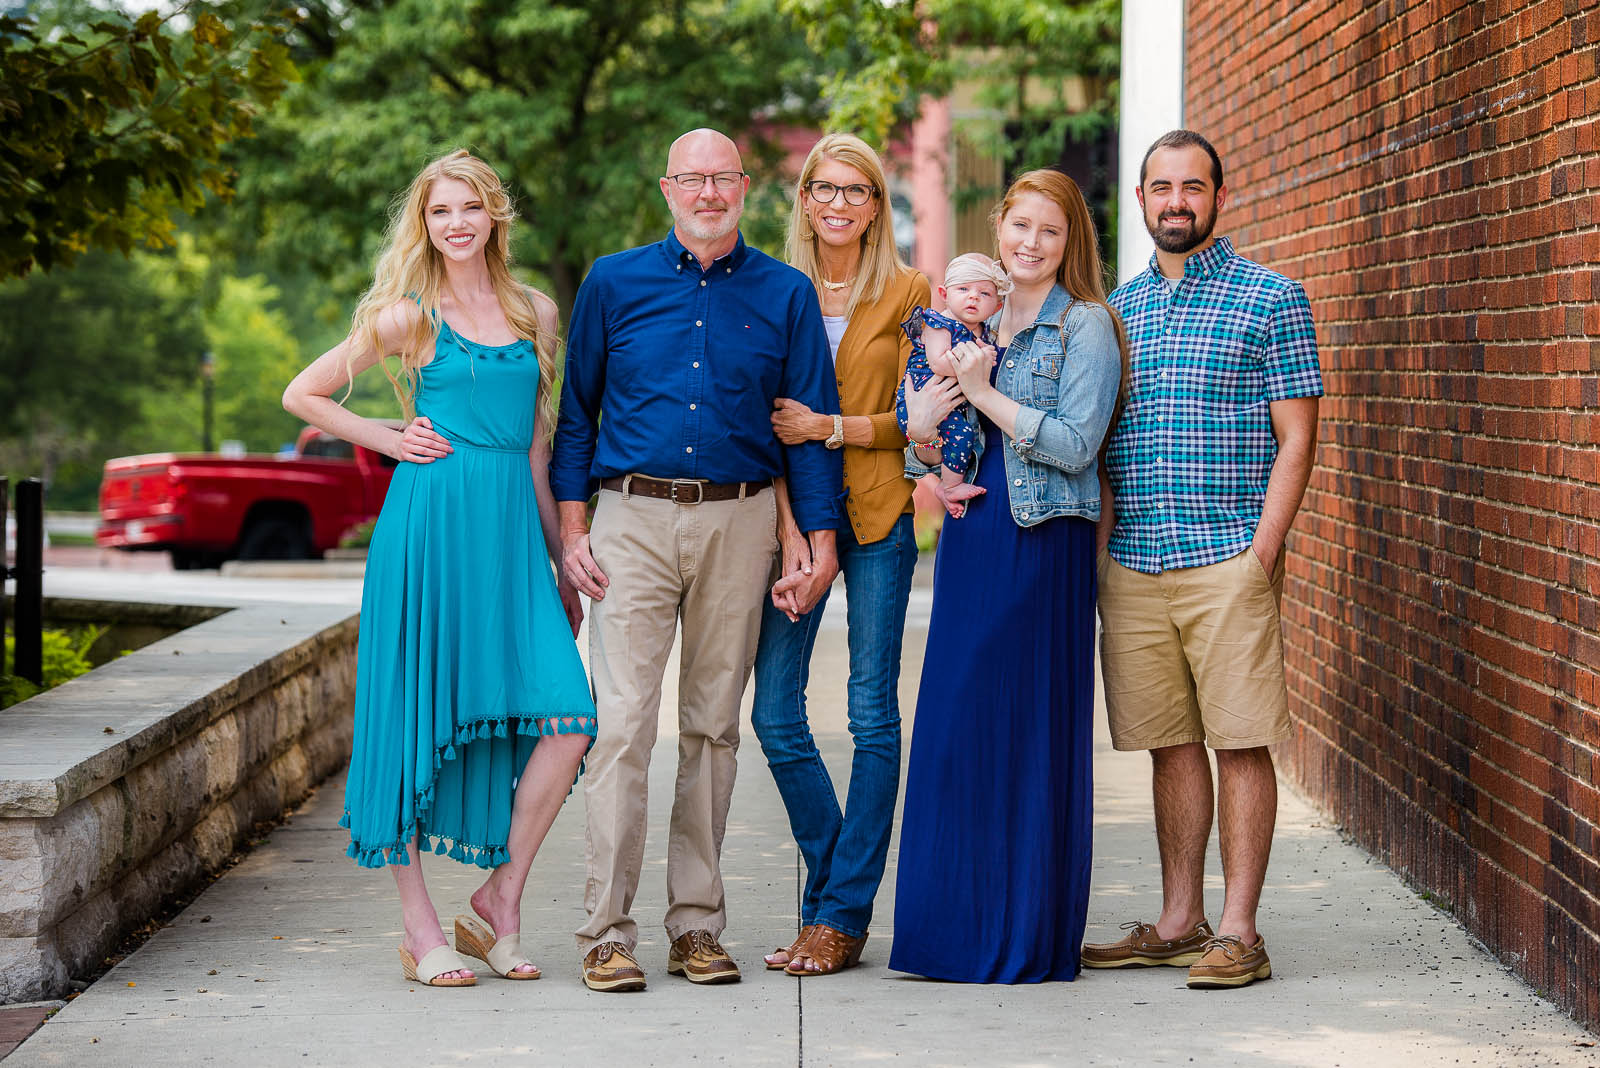 Eric_and_Christy_Photography_Blog_Cannon_Family-1